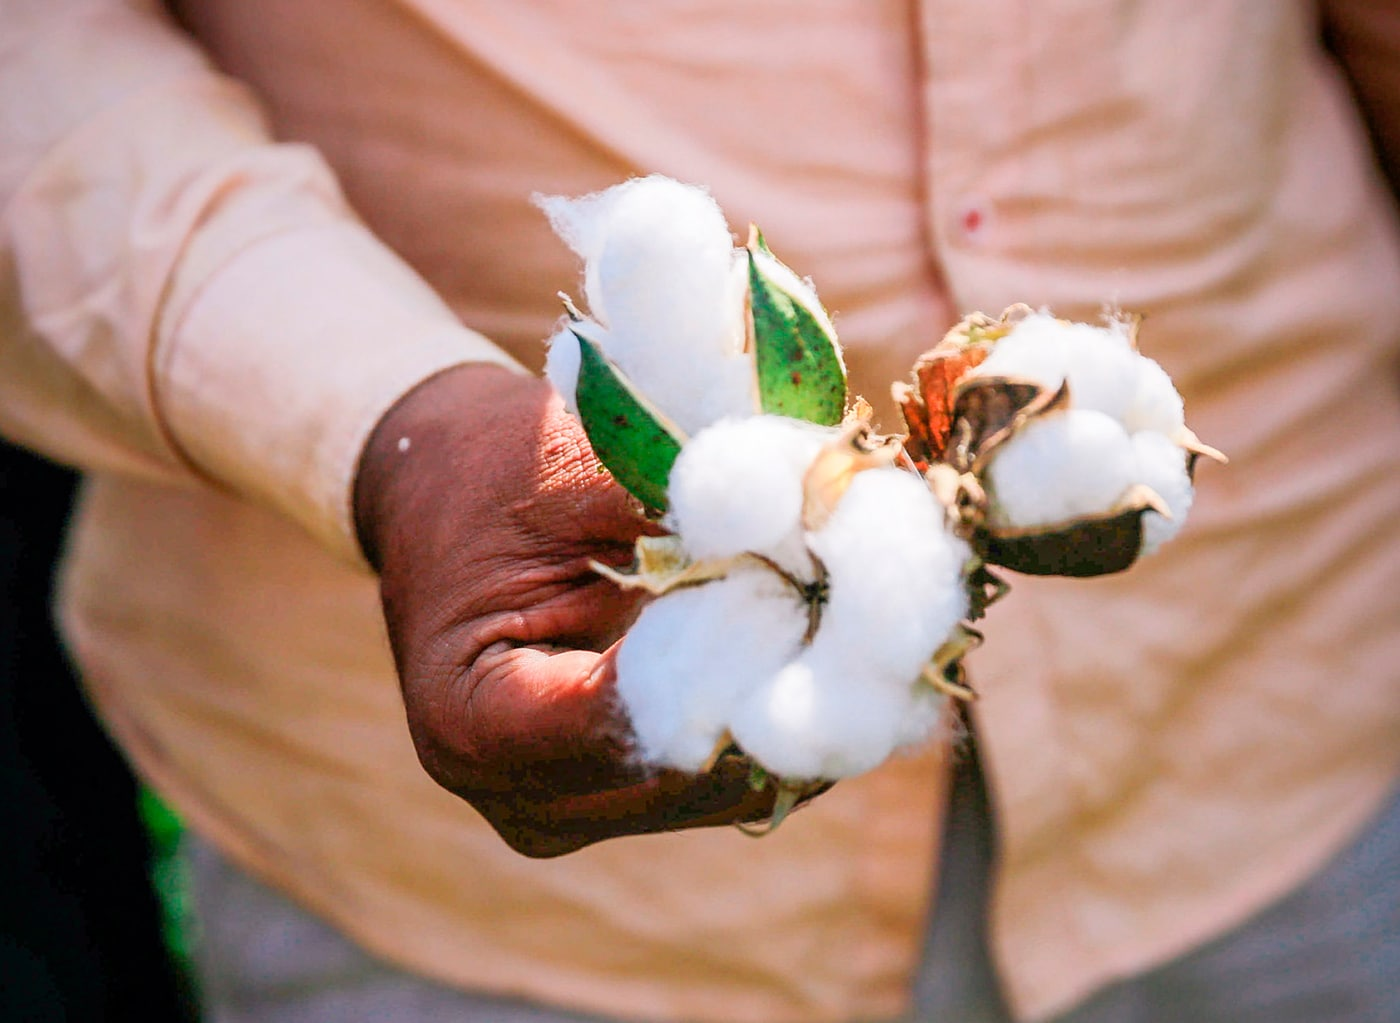 A man holding cotton from more sustainable sources in his hand.